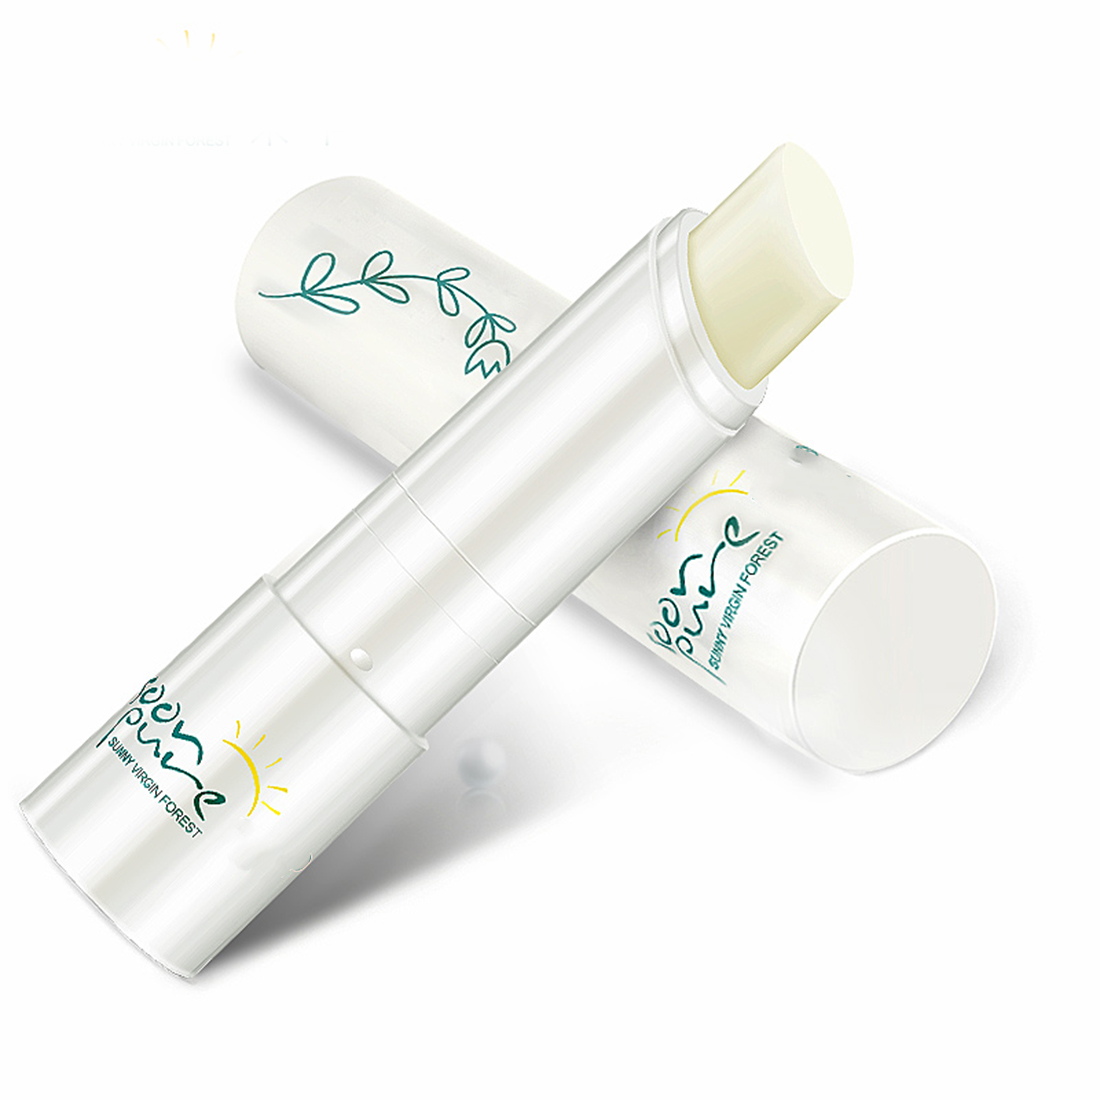 High Quality Hyaluronic Acid Lip Balm Moisturizer Lipstick Lip Balms Nourishing Makeup Beauty Lips Cream